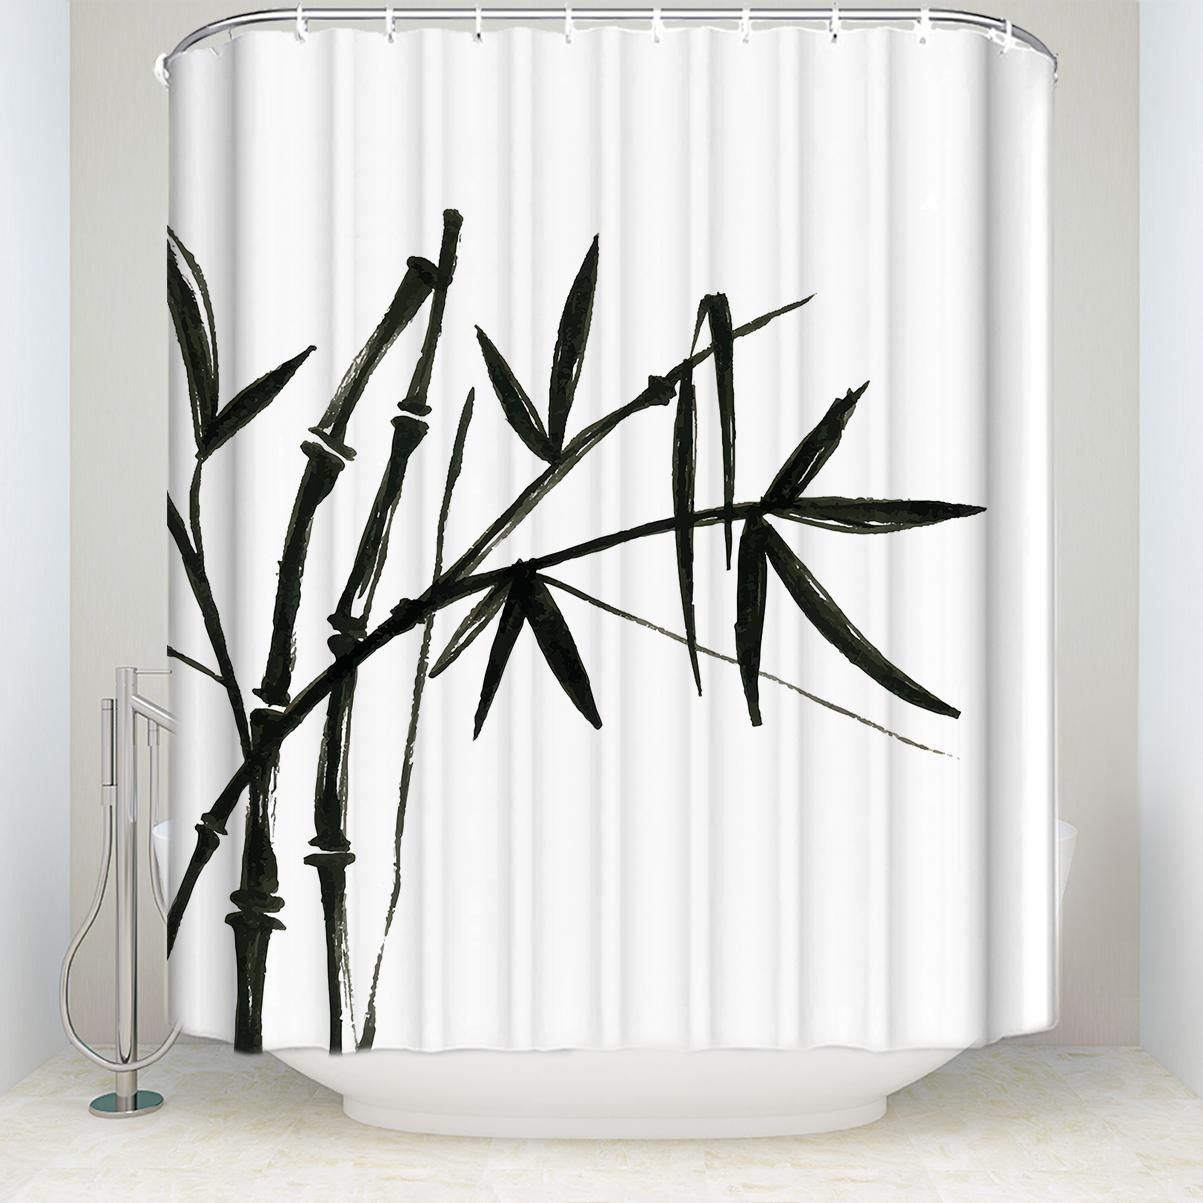 2018 Custom Waterproof Bathroom Chinese Ink Painting Bamboo Print Shower Curtain Polyester Fabric Black White From Waxer 3051